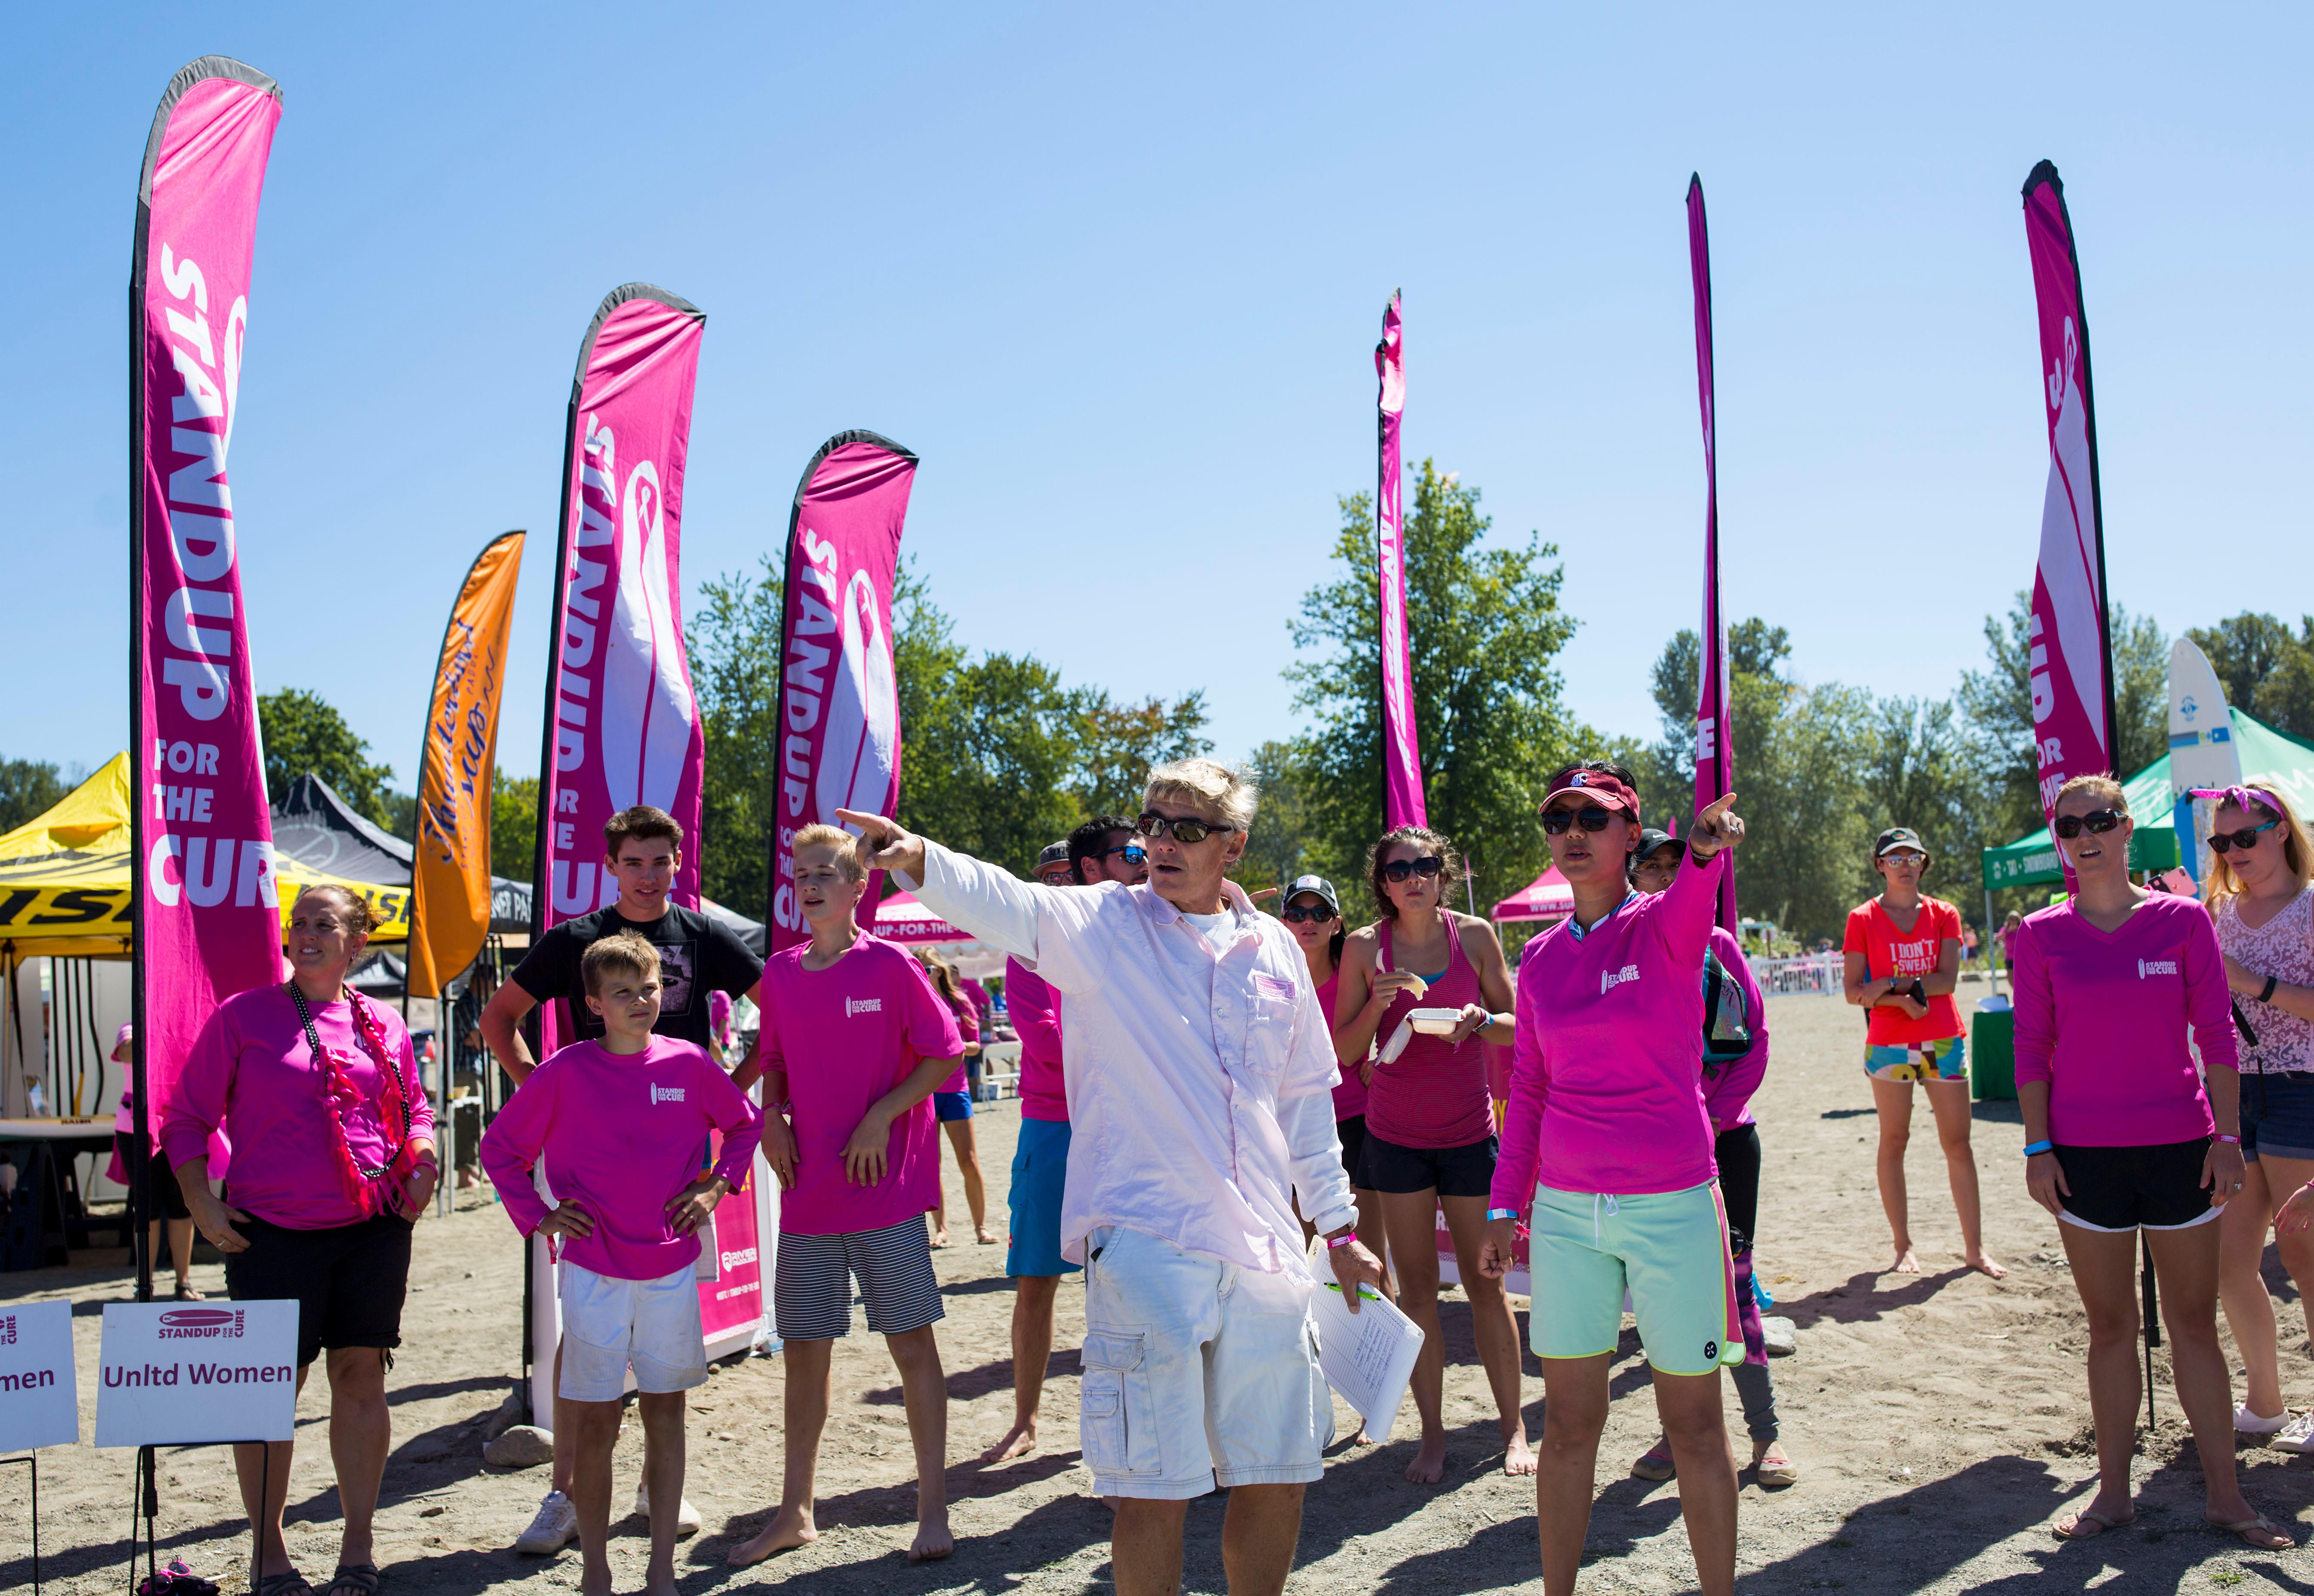 KOMO TV and Seattle Refined hosted Standup for the Cure on Sunset Beach at Lake Sammamish State Park on Saturday, August 26, 2017. Hundreds came out for a day at the lake featuring professional SUP instruction, races, live music, and raffle prizes – all while raising awareness and funds for Susan G. Komen Puget Sound. Attendees chose between hanging out on the lake, staying dry on land (or both!) and enjoyed Barefoot Wine, Mac & Jack's Beer, and Tito's Handmade Vodka in the social garden. Registered participants received a swag bag that with apparel, complimentary lunch from one of the awesome food vendors, a drink ticket and offers from the expo sponsors. Every $125 raised for Komen enables a local uninsured woman to receive a breast exam. (Image: Sy Bean / Seattle Refined)